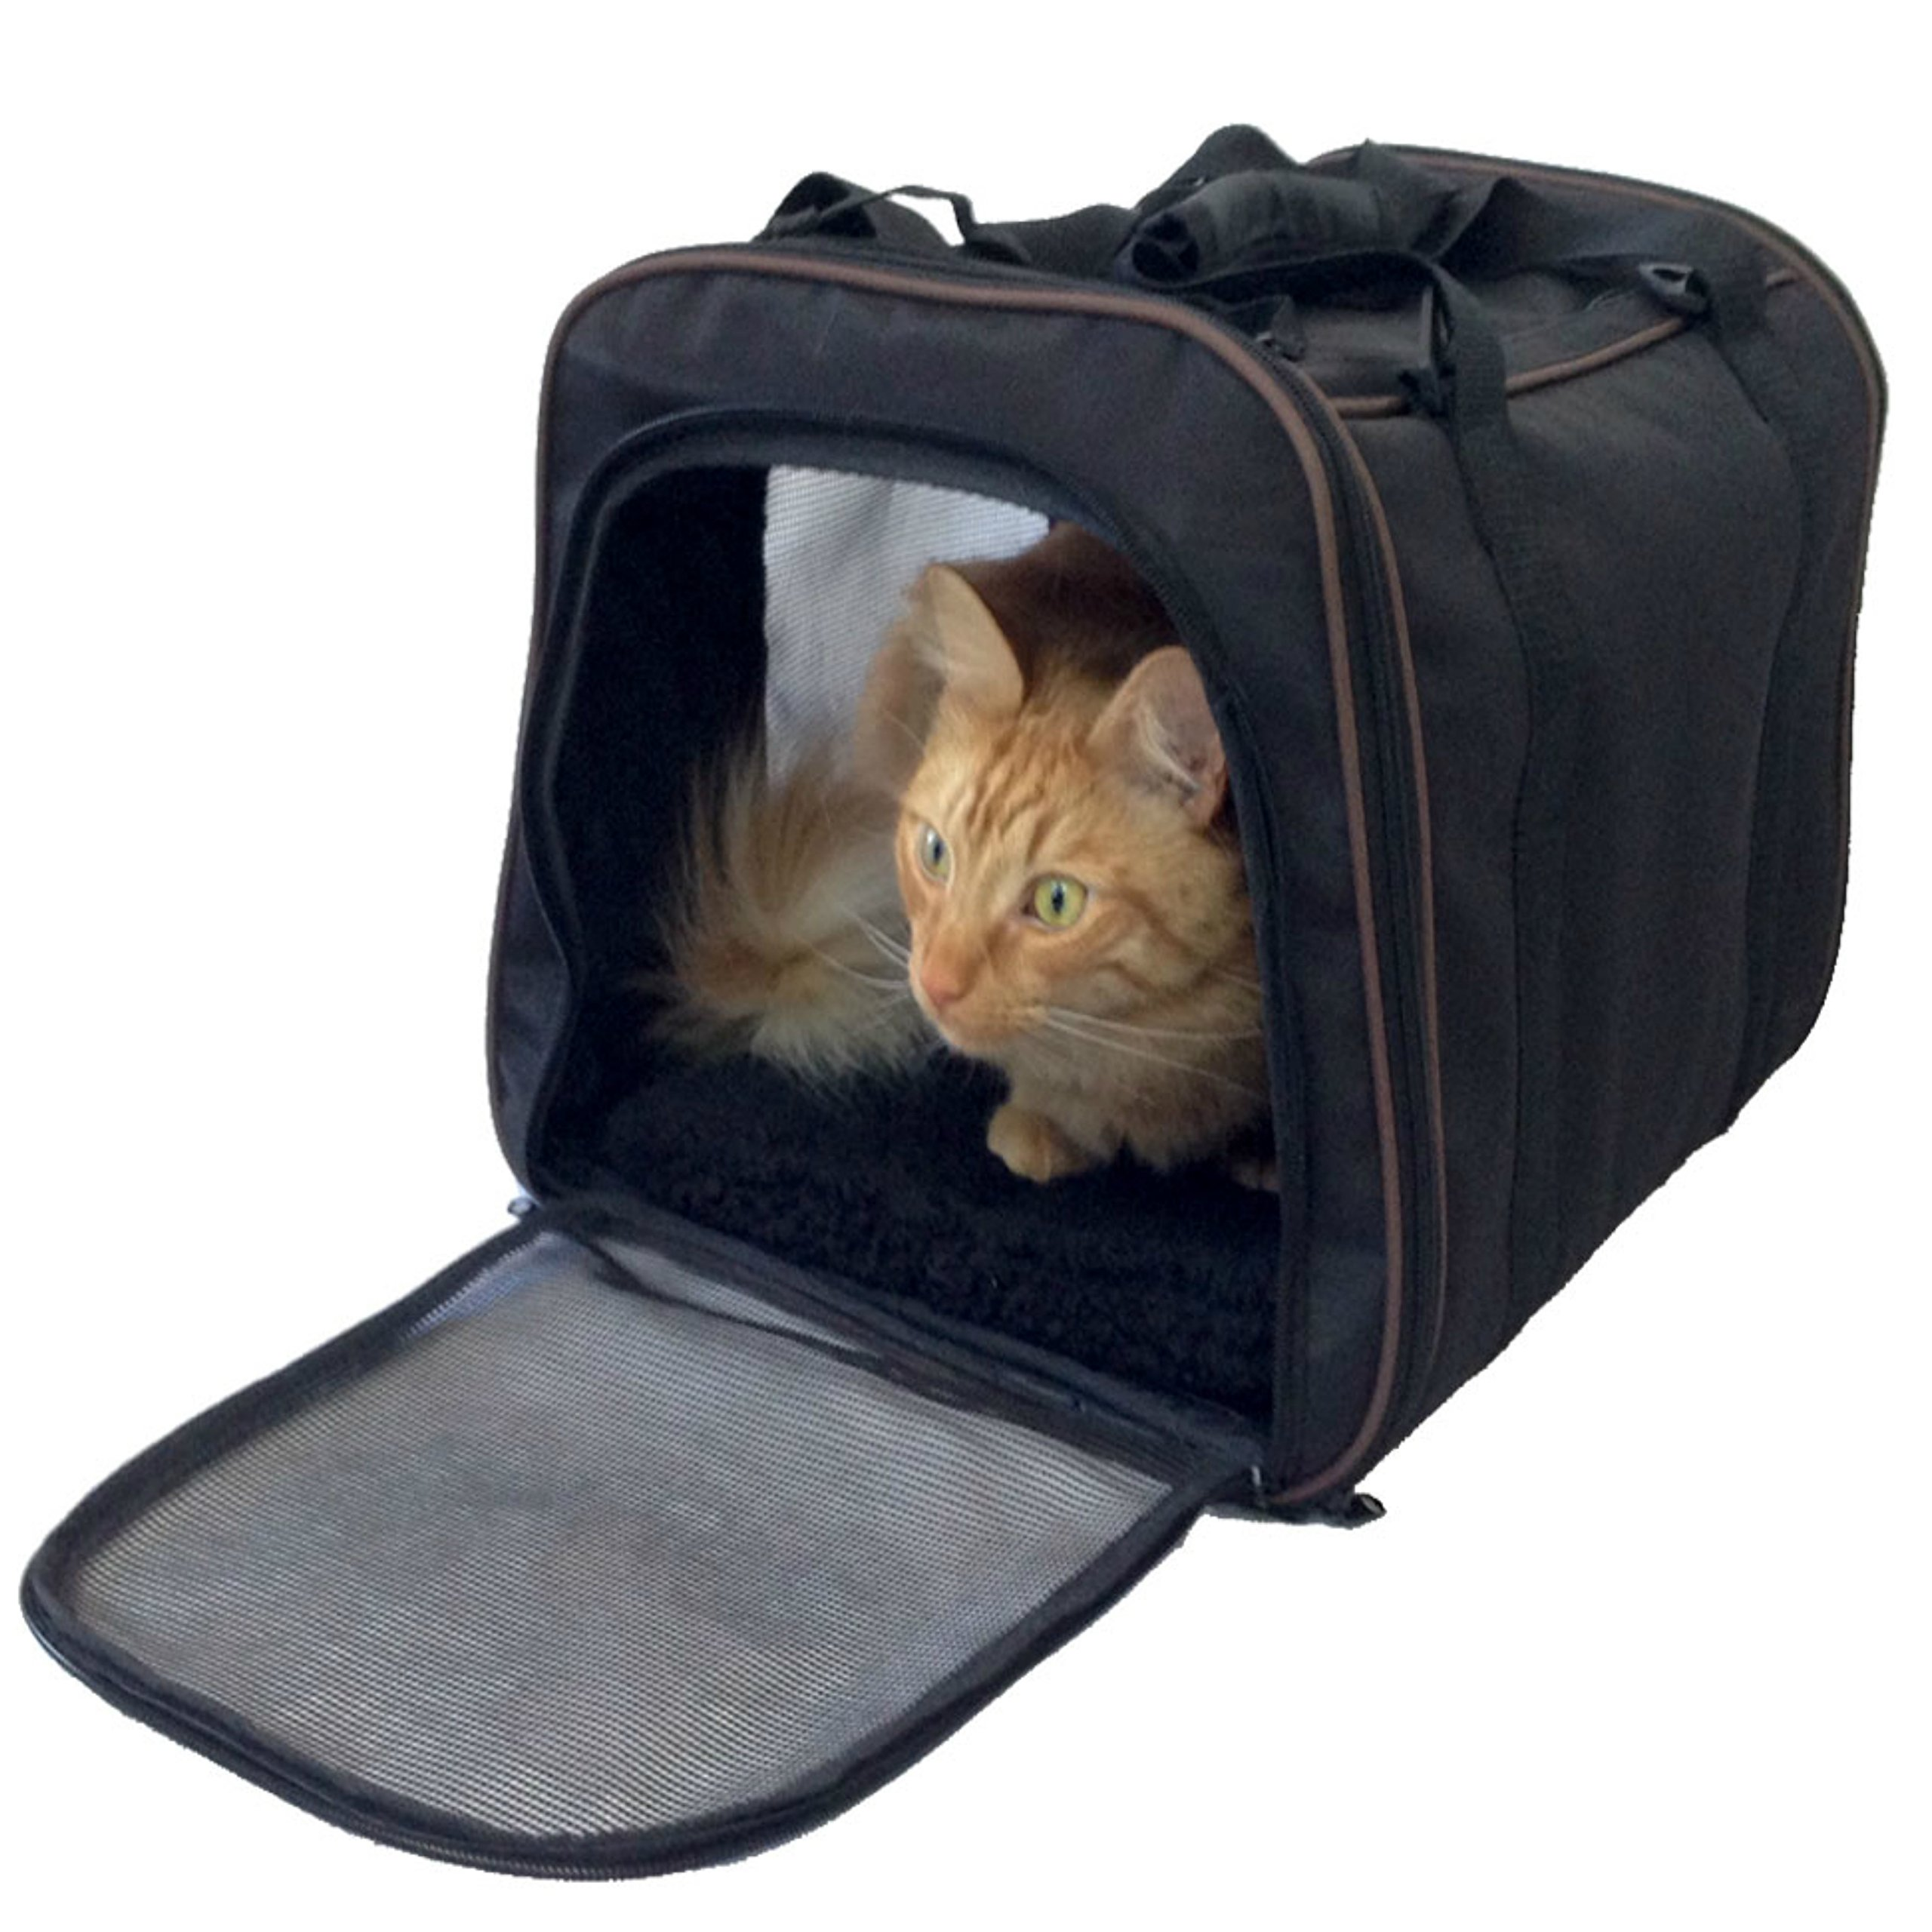 Pawfect Pet-Pet Carrier,Large Soft Sided Airline Approved For Travel,For Cat And Dog,Top Loading,Foldable For Storage,Black